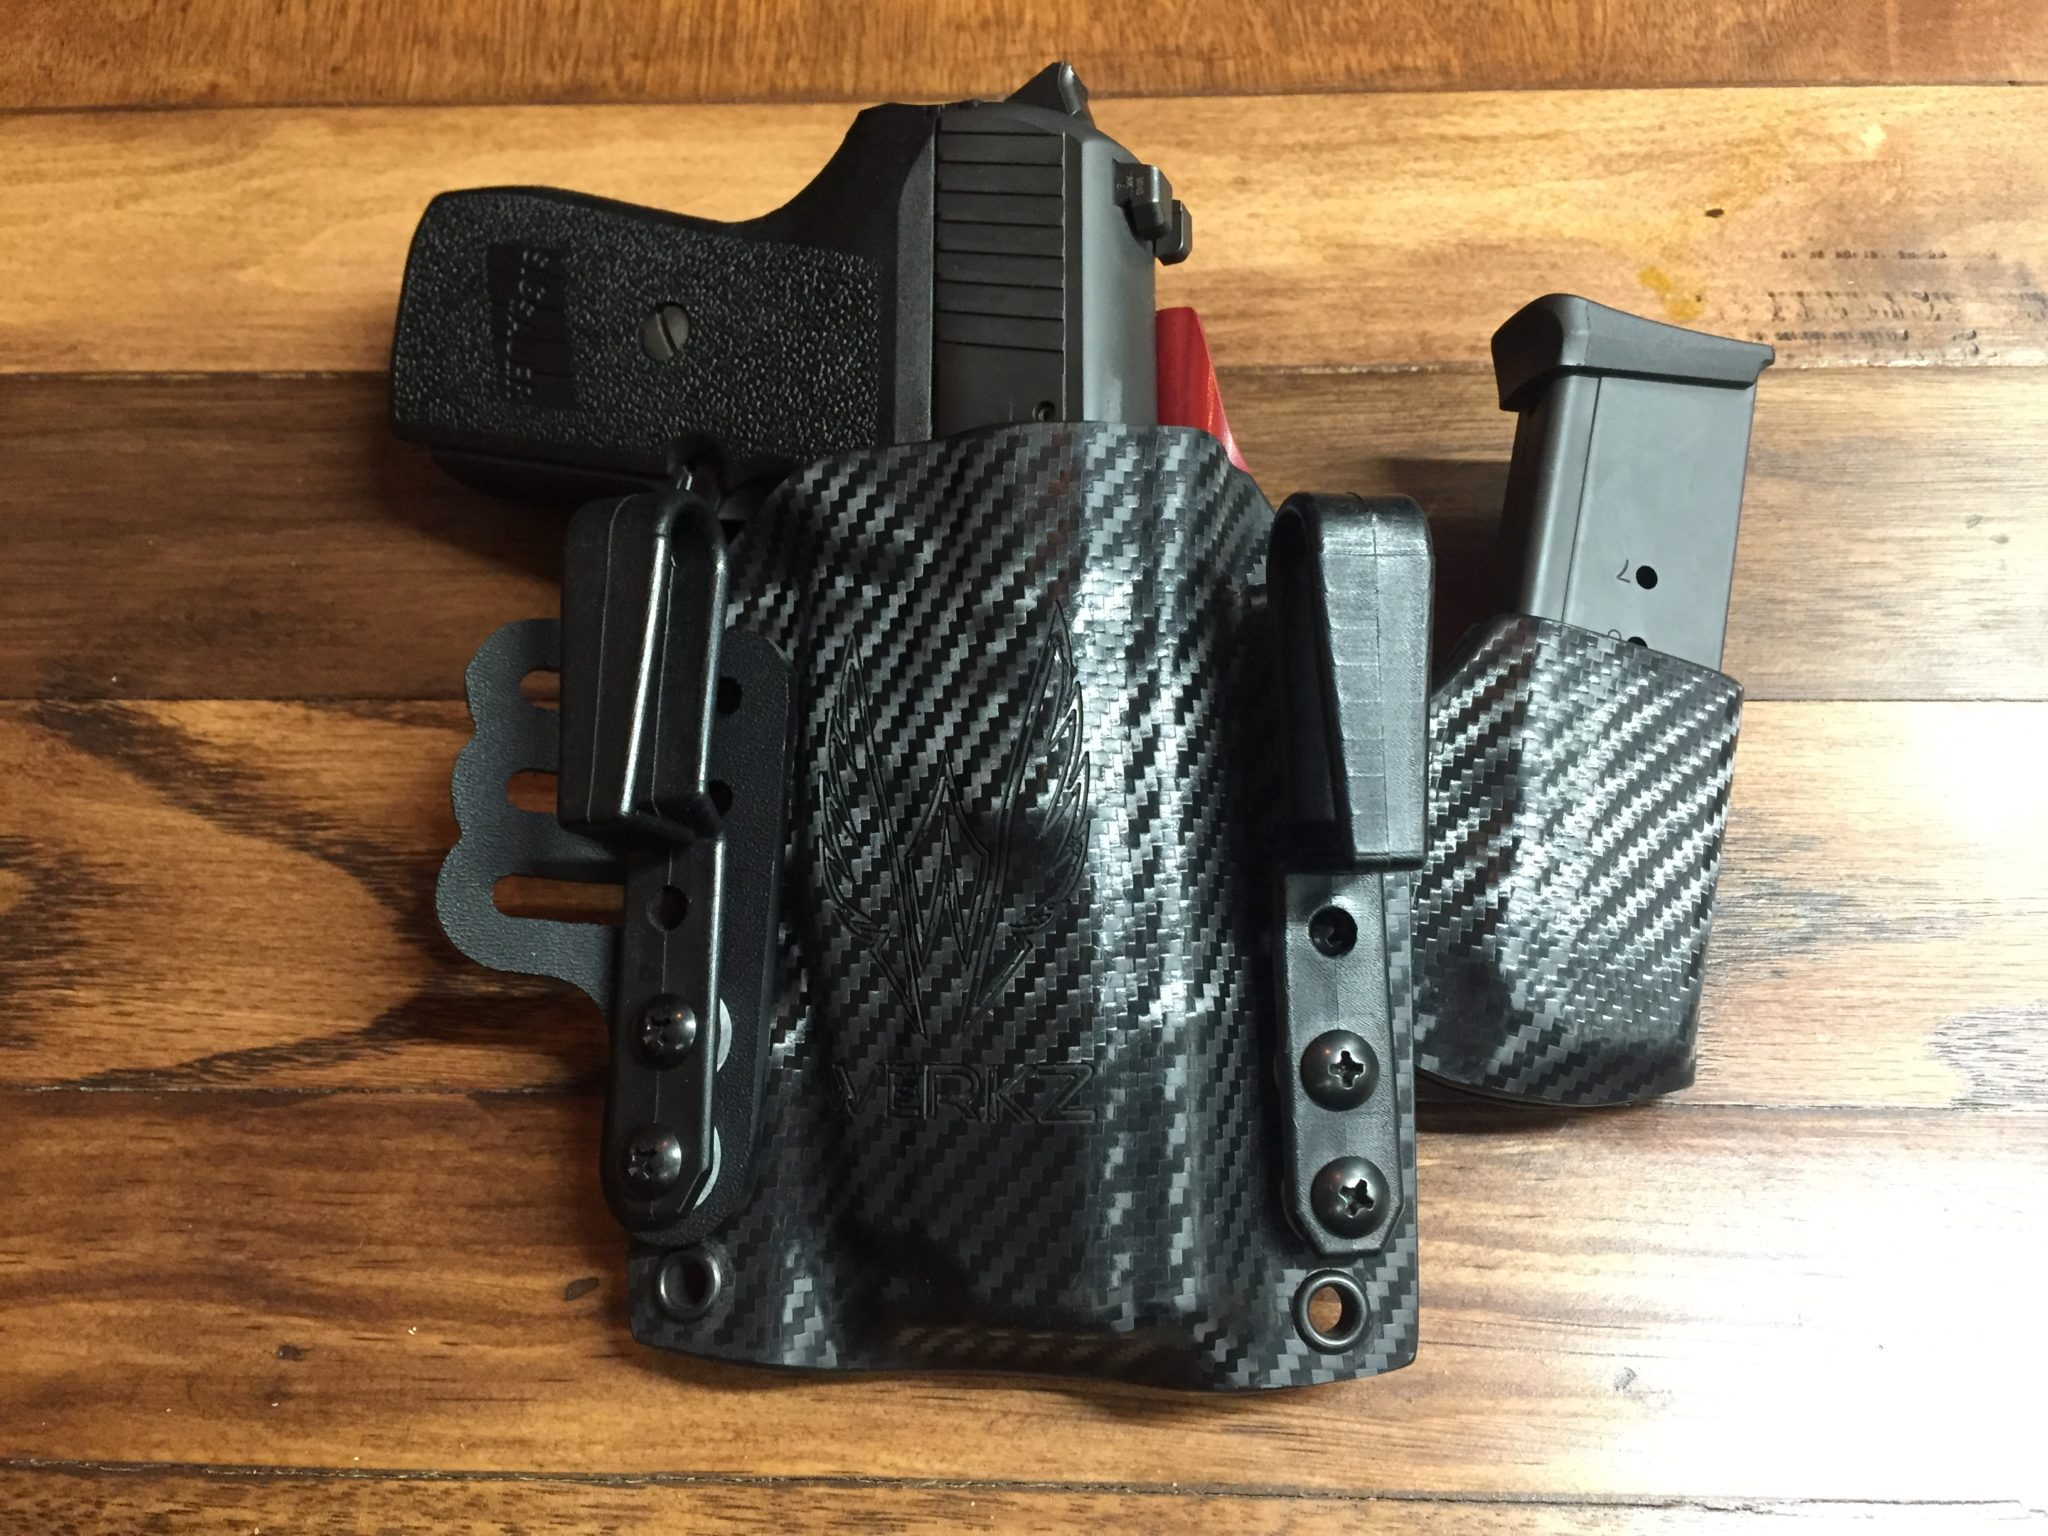 Gear Review: Werkz Bisect 2 0 Appendix Holster - Tier Three